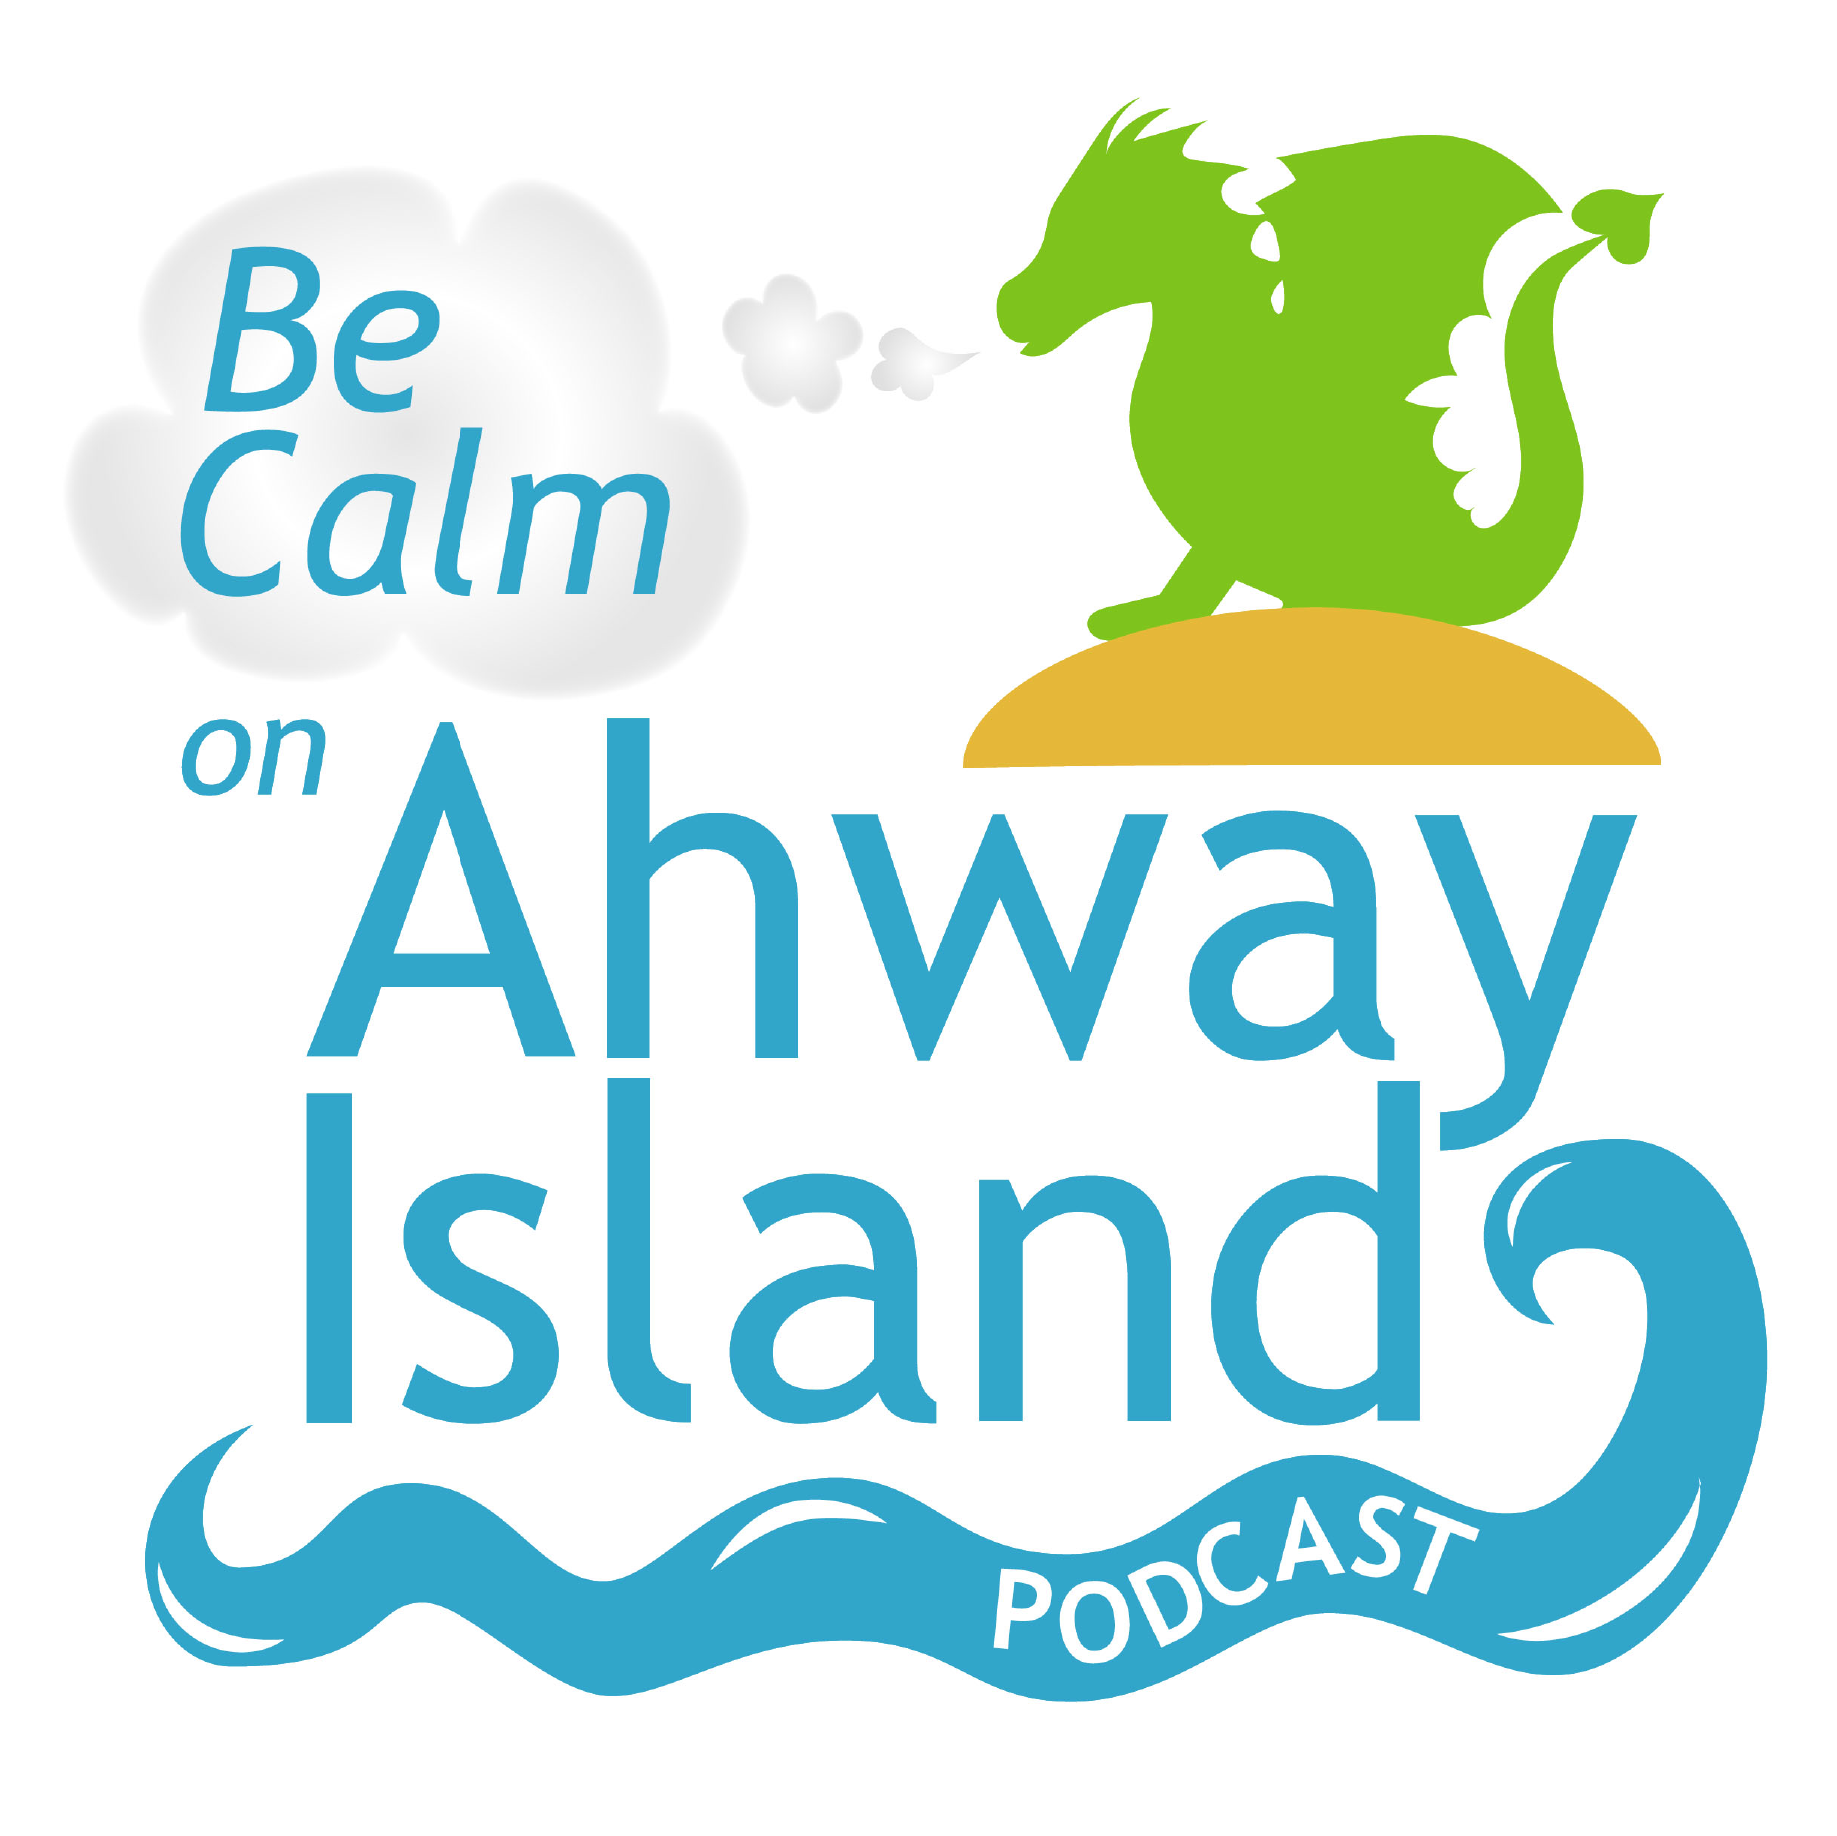 Ahway Island:Sheep Jam Productions